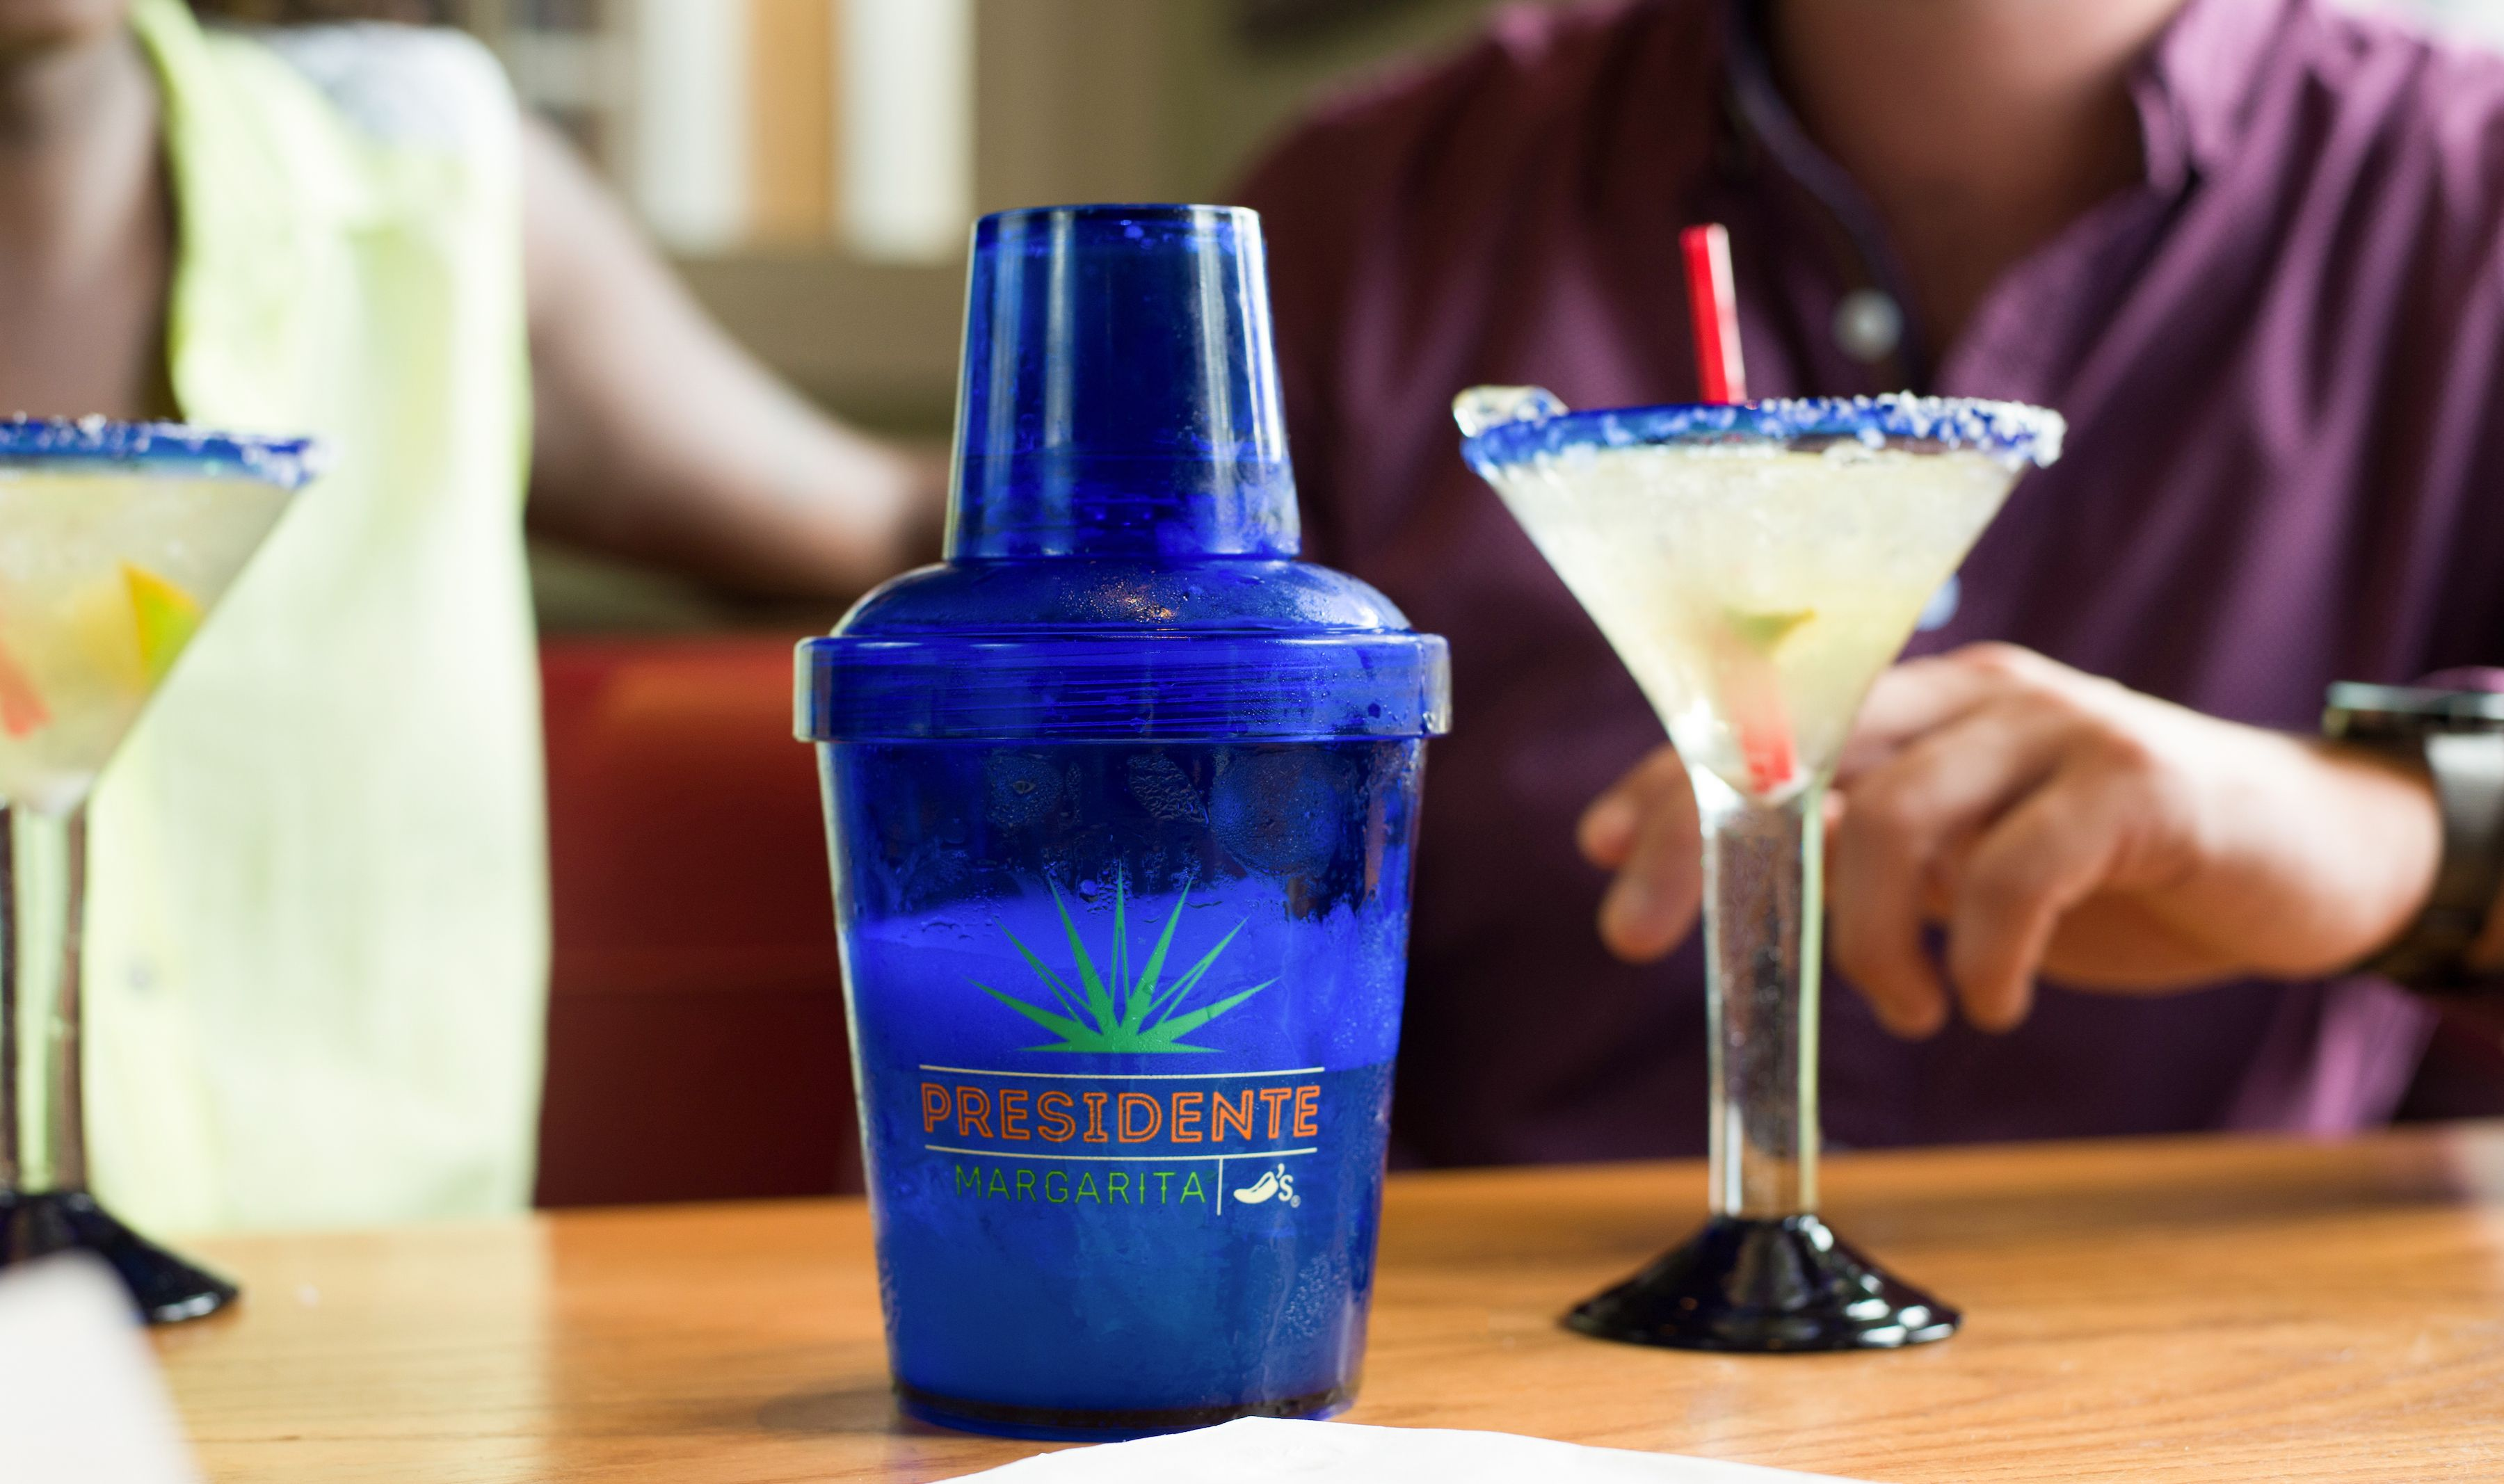 Chili's Is Celebrating Its Birthday With $3 Margs, So Our Wednesday Plans Are Set